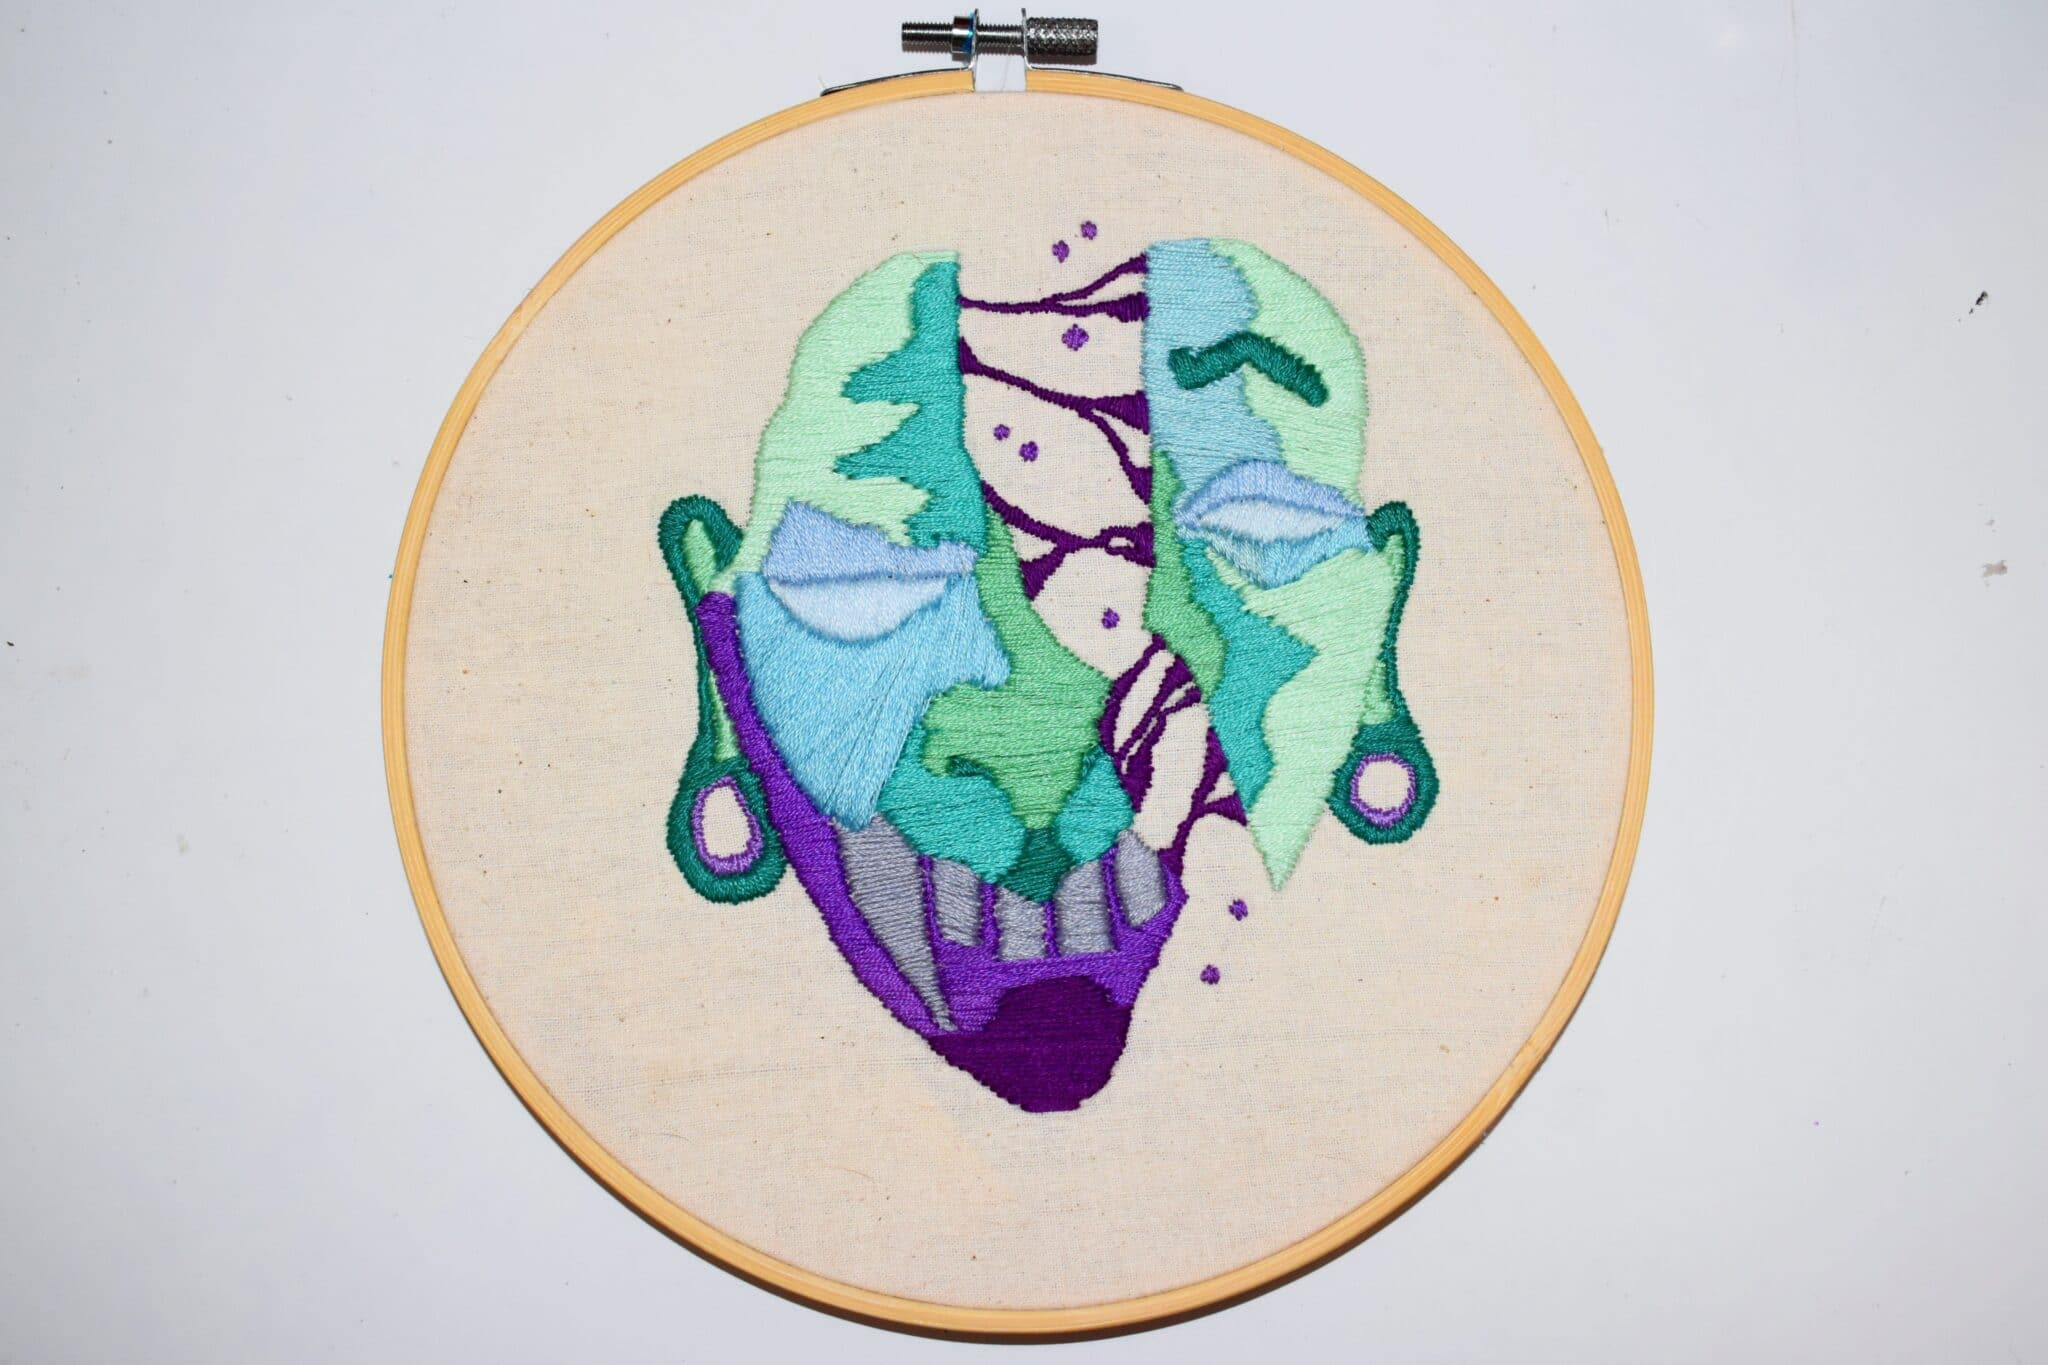 Surreal Split Mask And Face (hand Stitched Embroidery Original Art) By Georgiarubyp